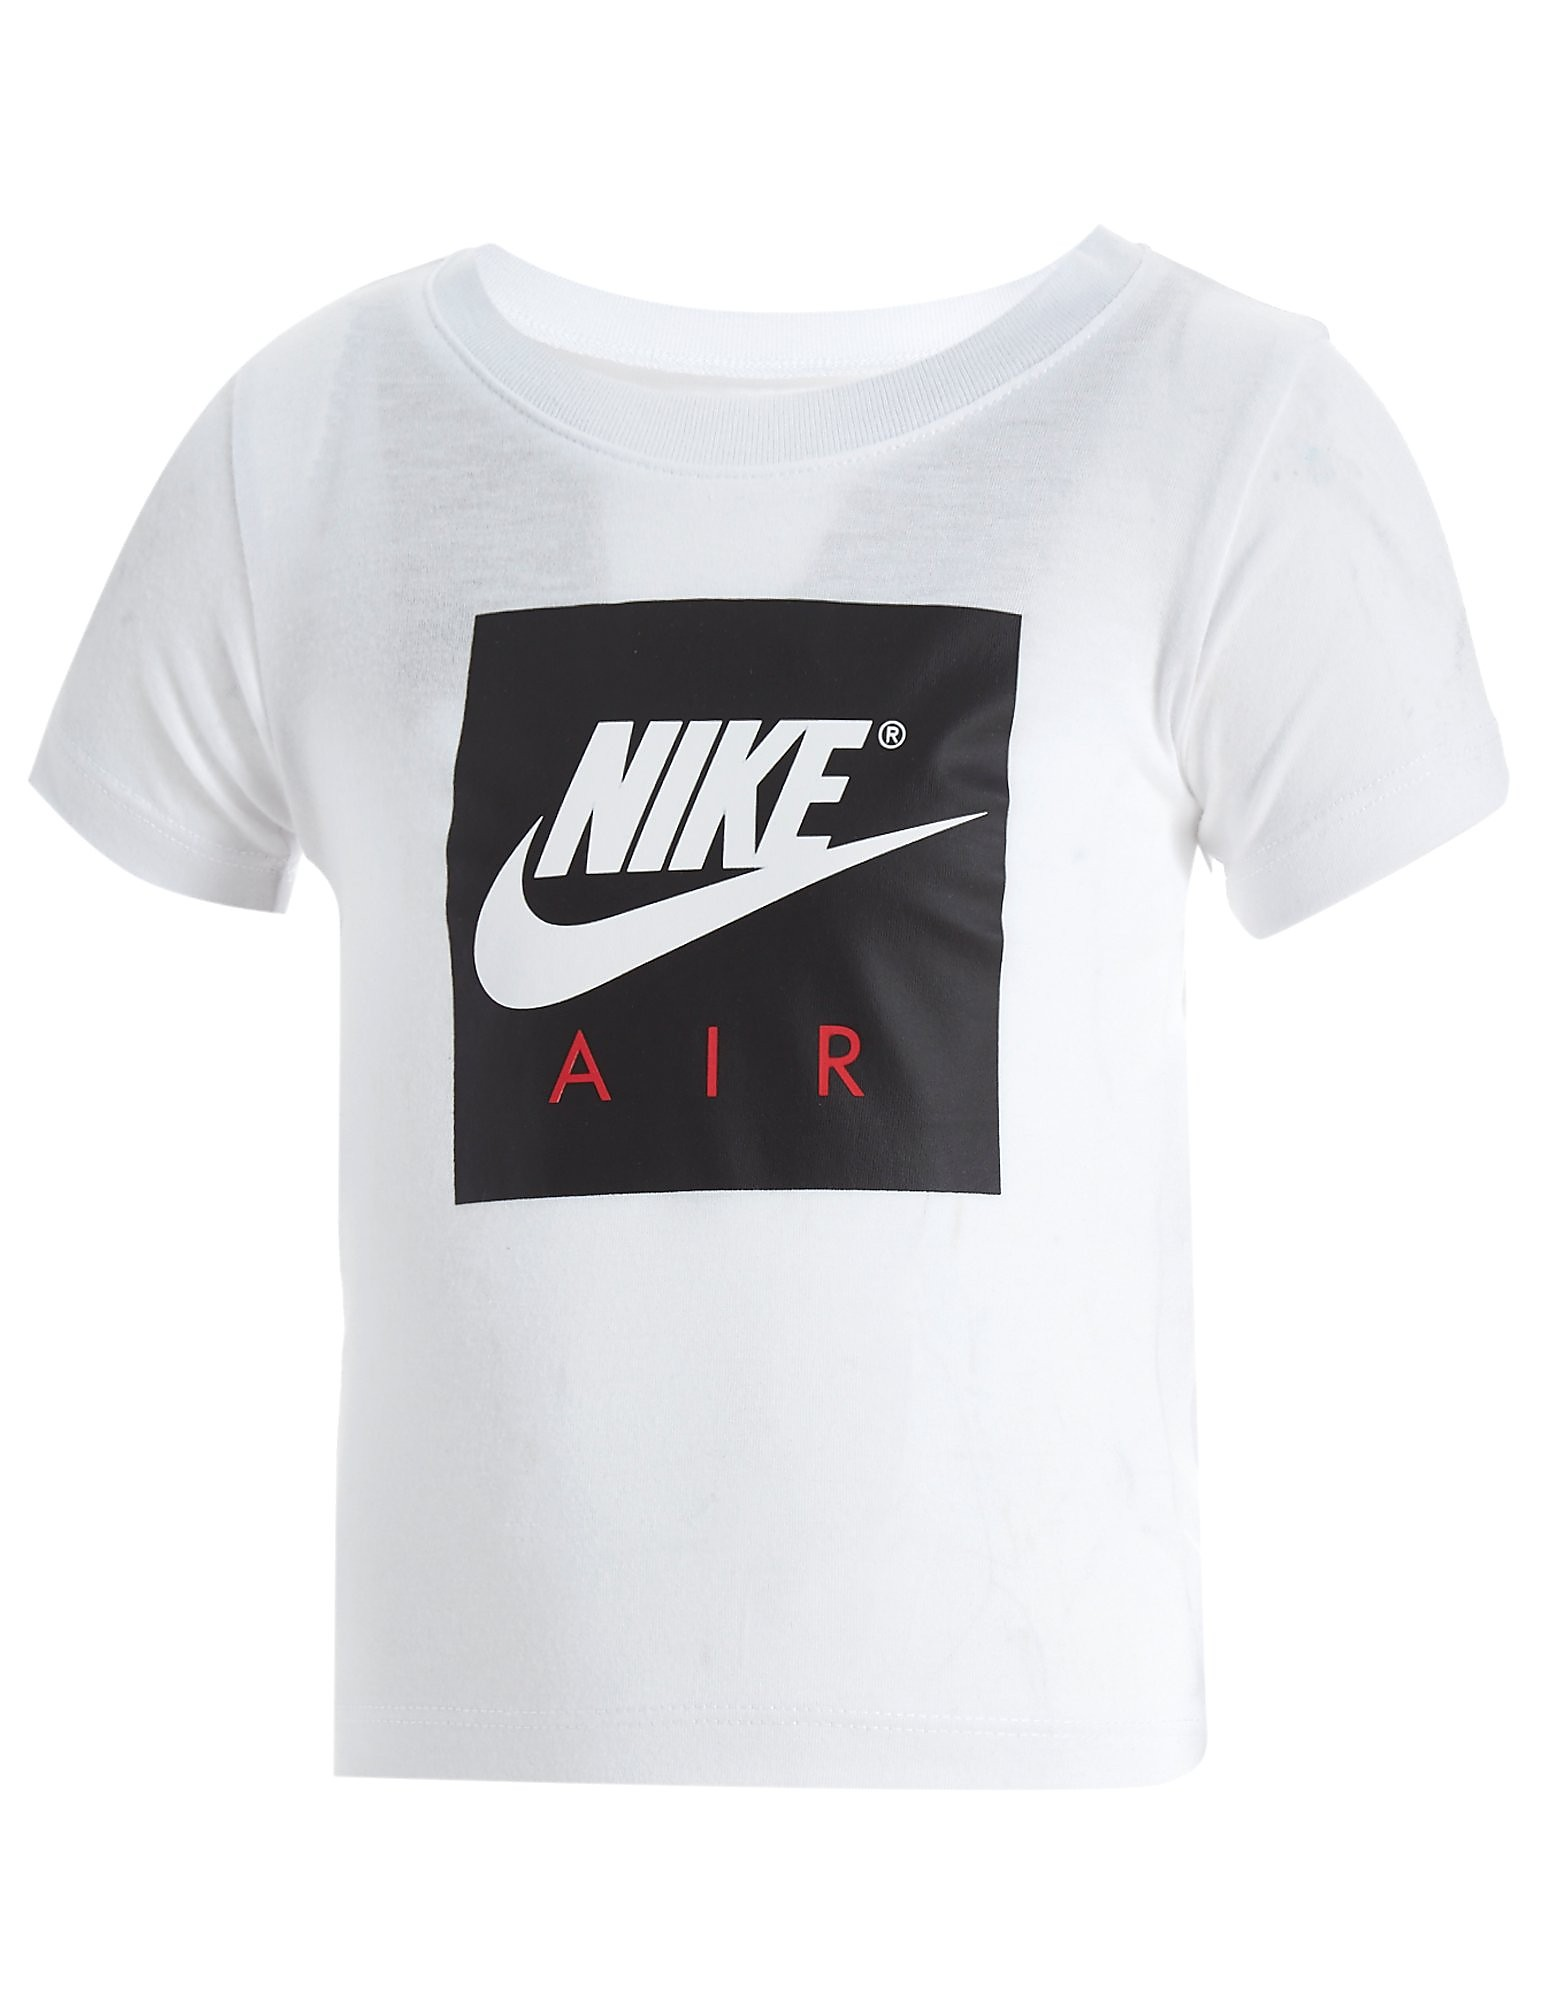 Nike camiseta Air Box para bebé